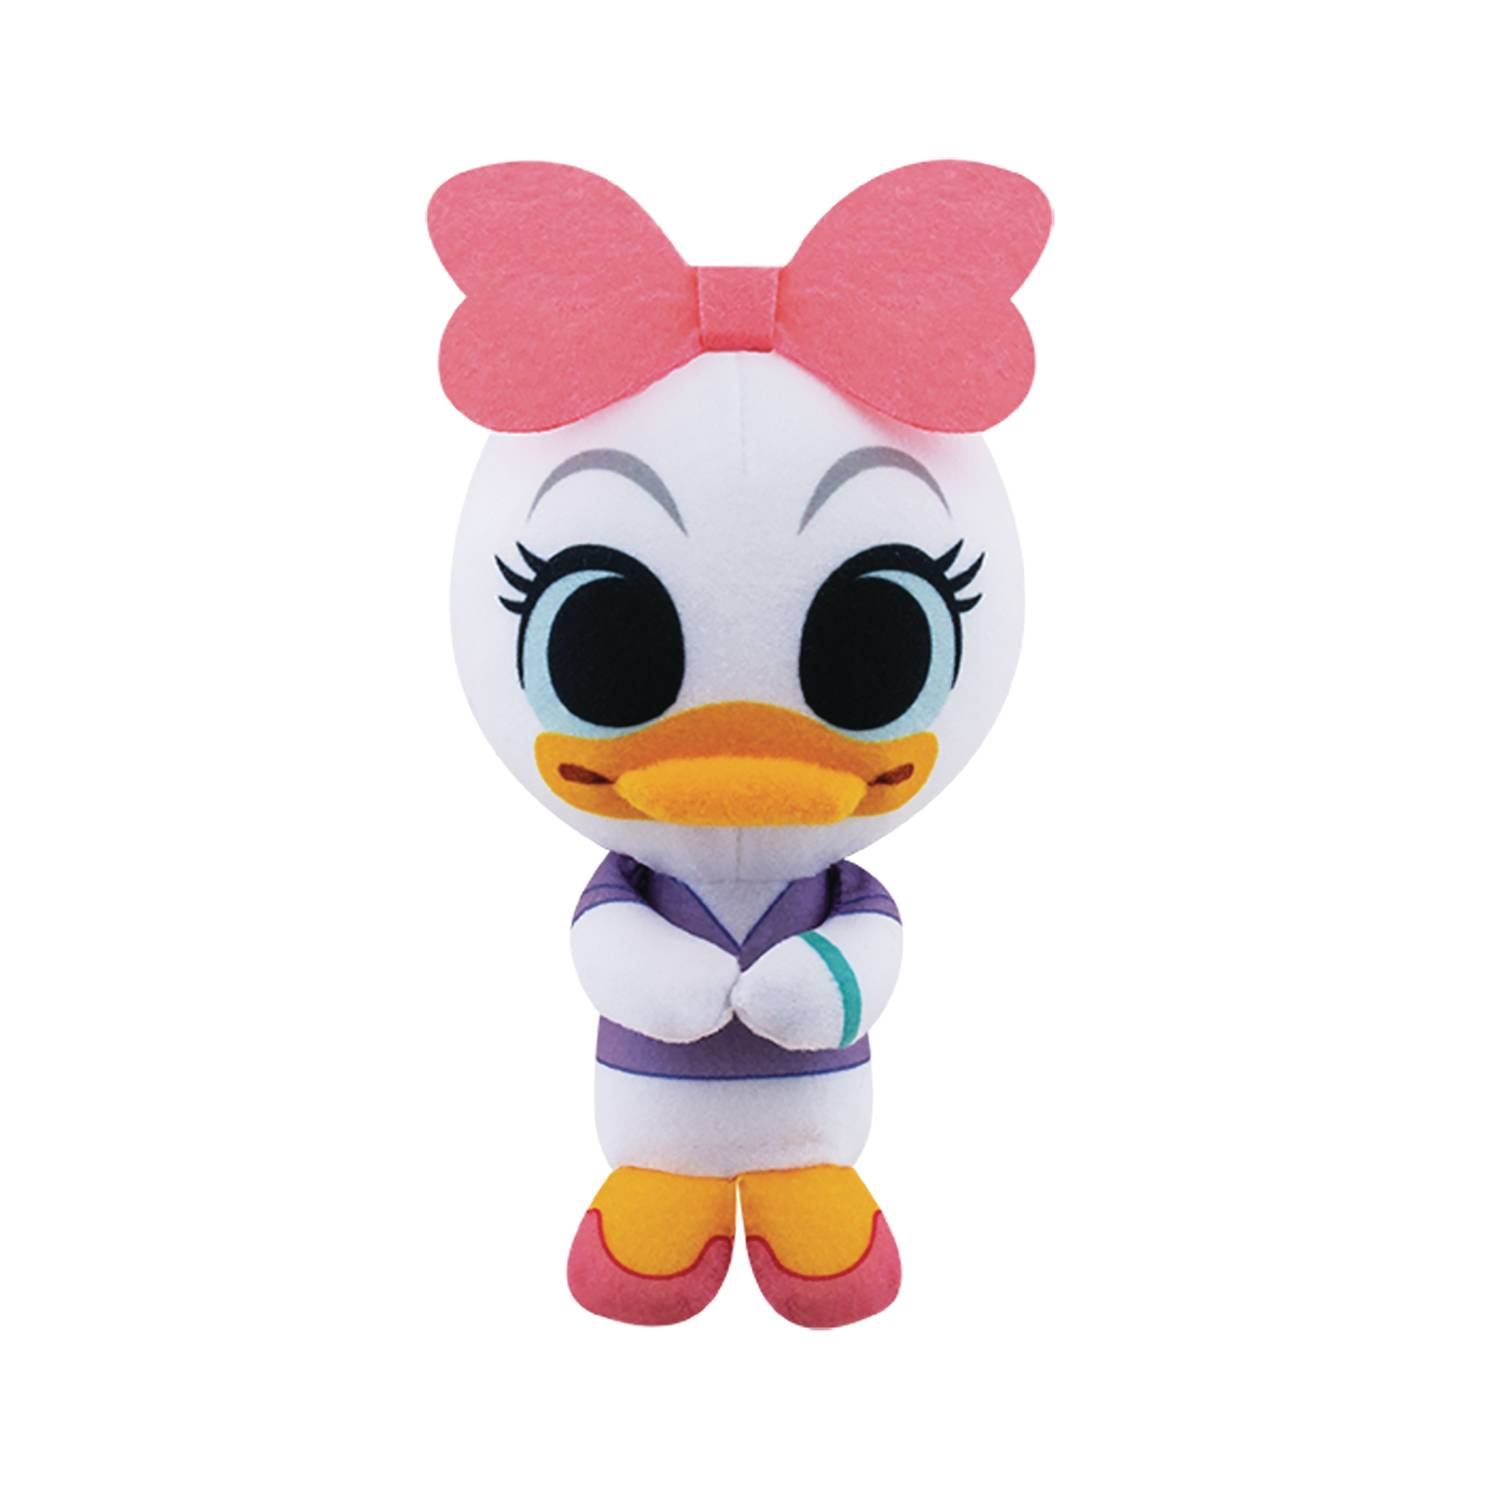 FUNKO MICKEY MOUSE S1 DAISY DUCK 4IN PLUSH